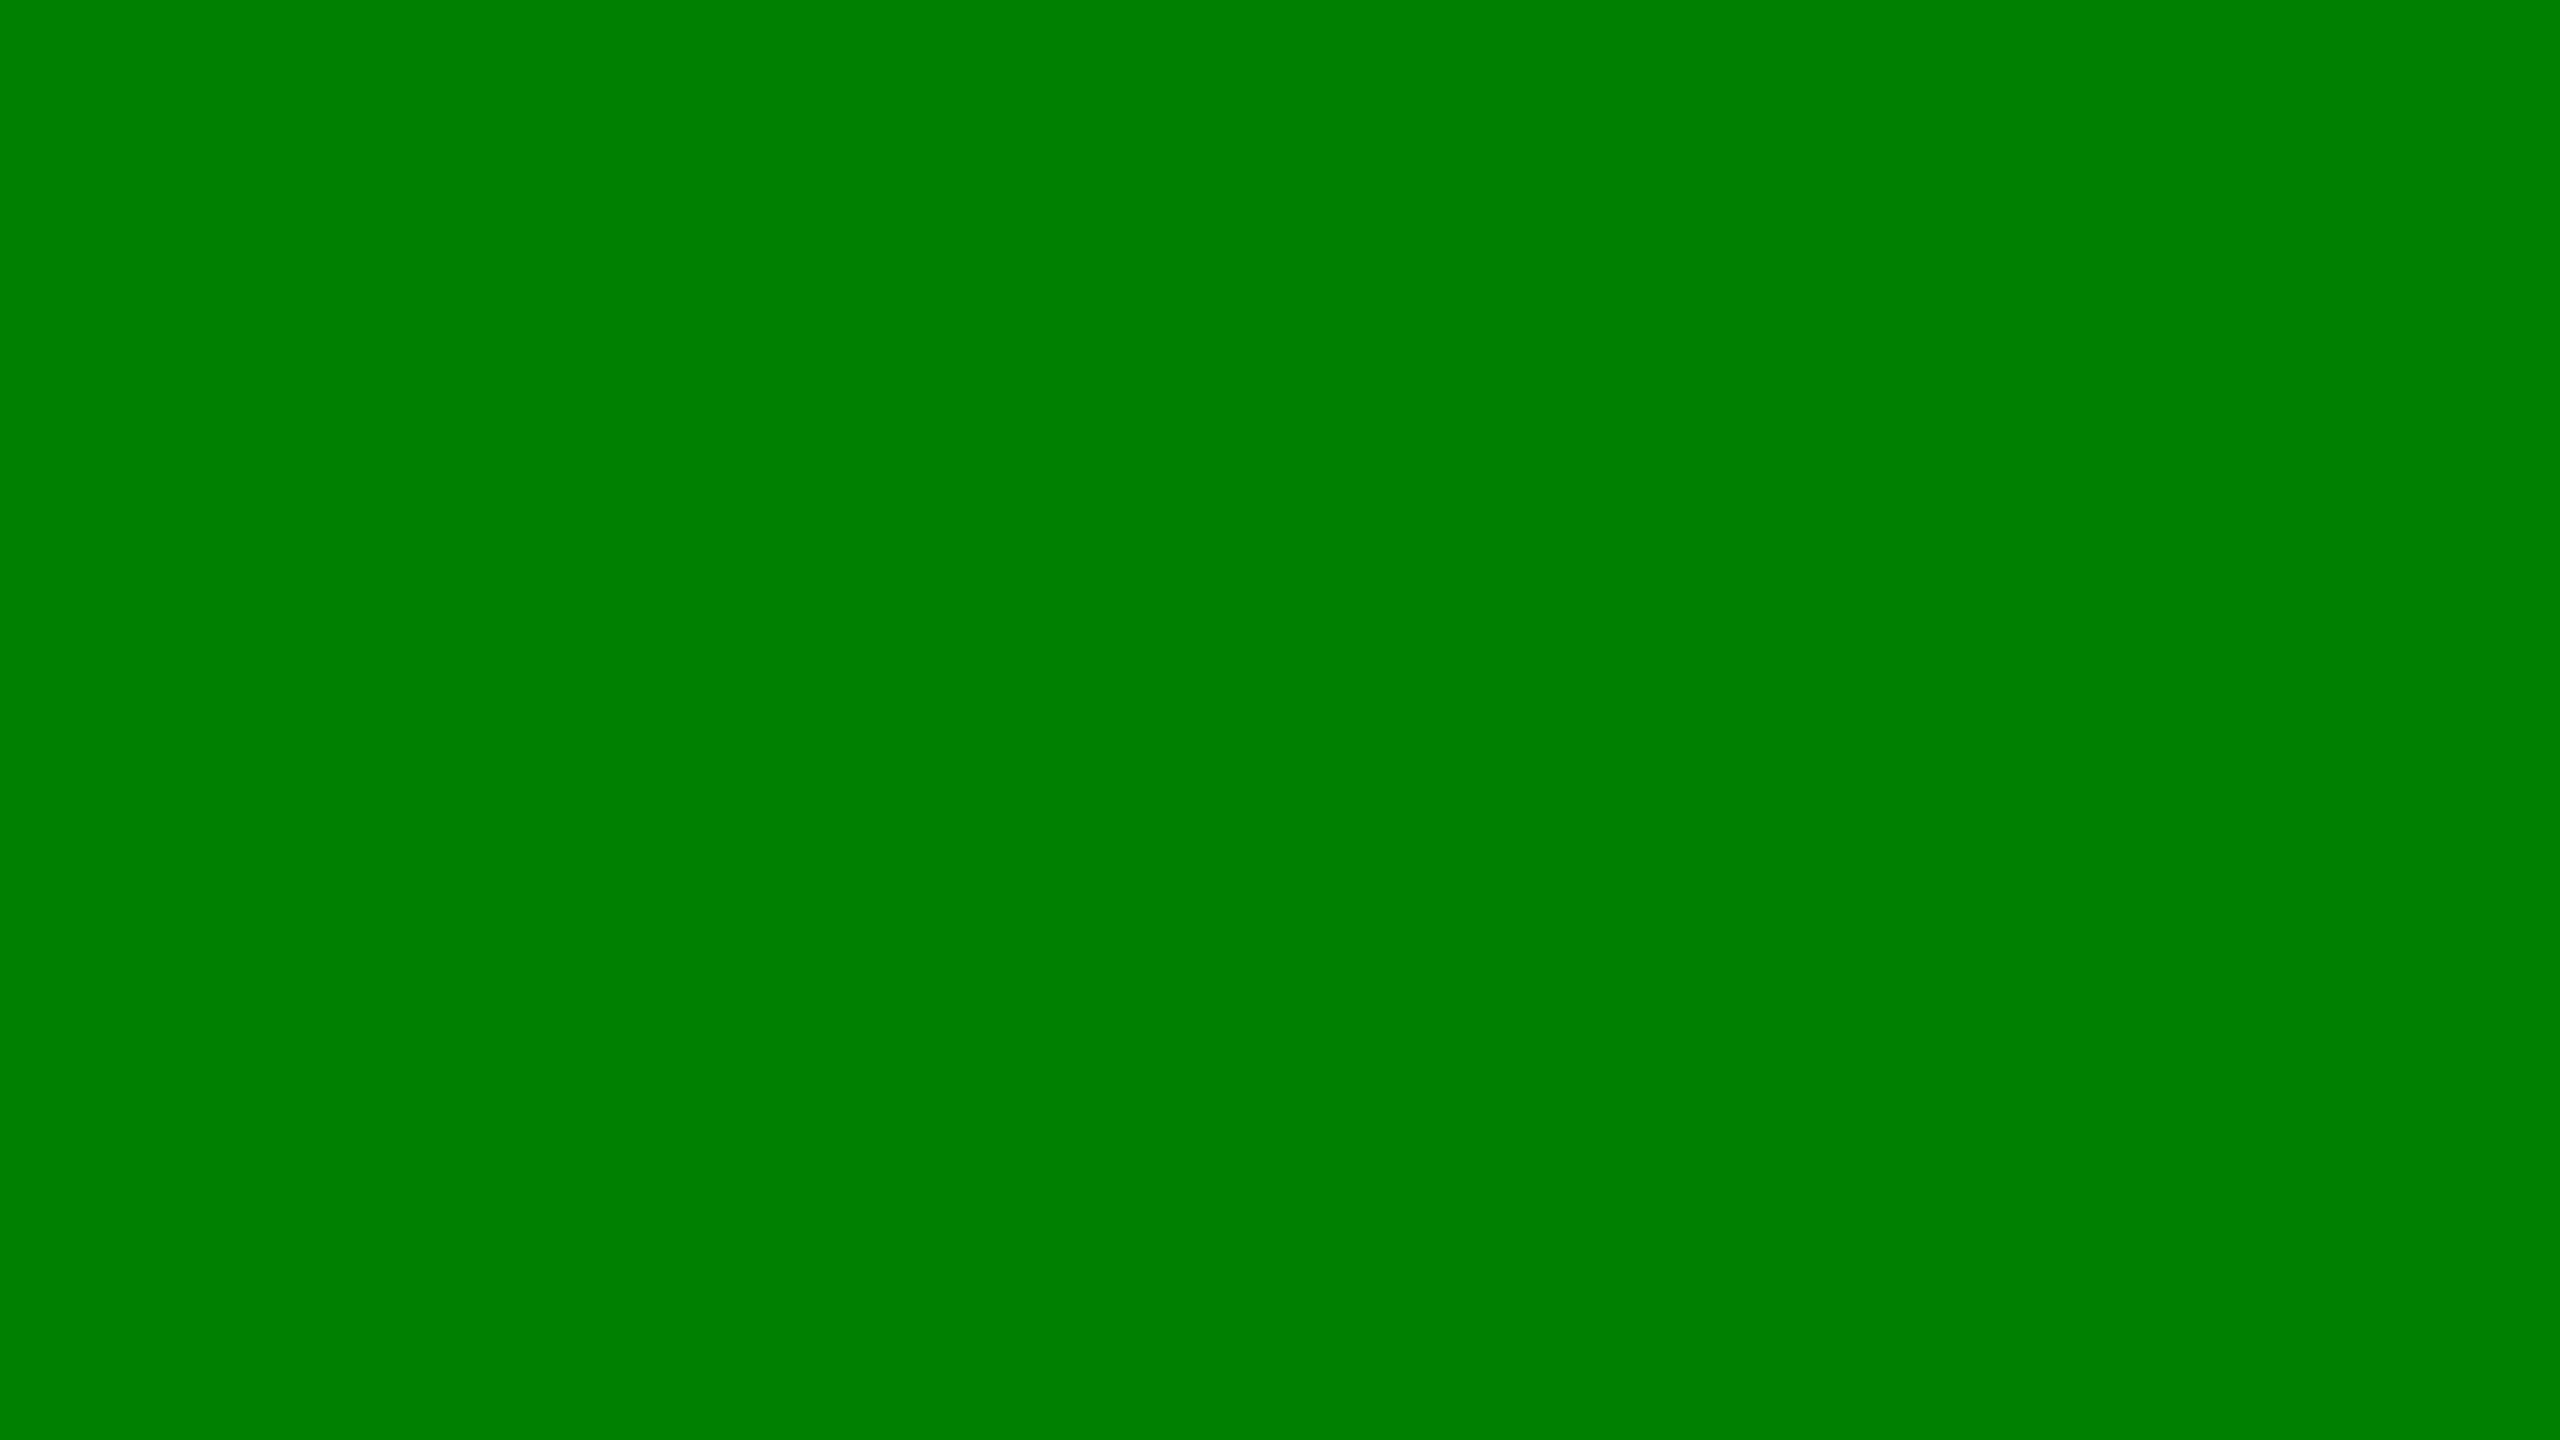 2560x1440 Office Green Solid Color Background